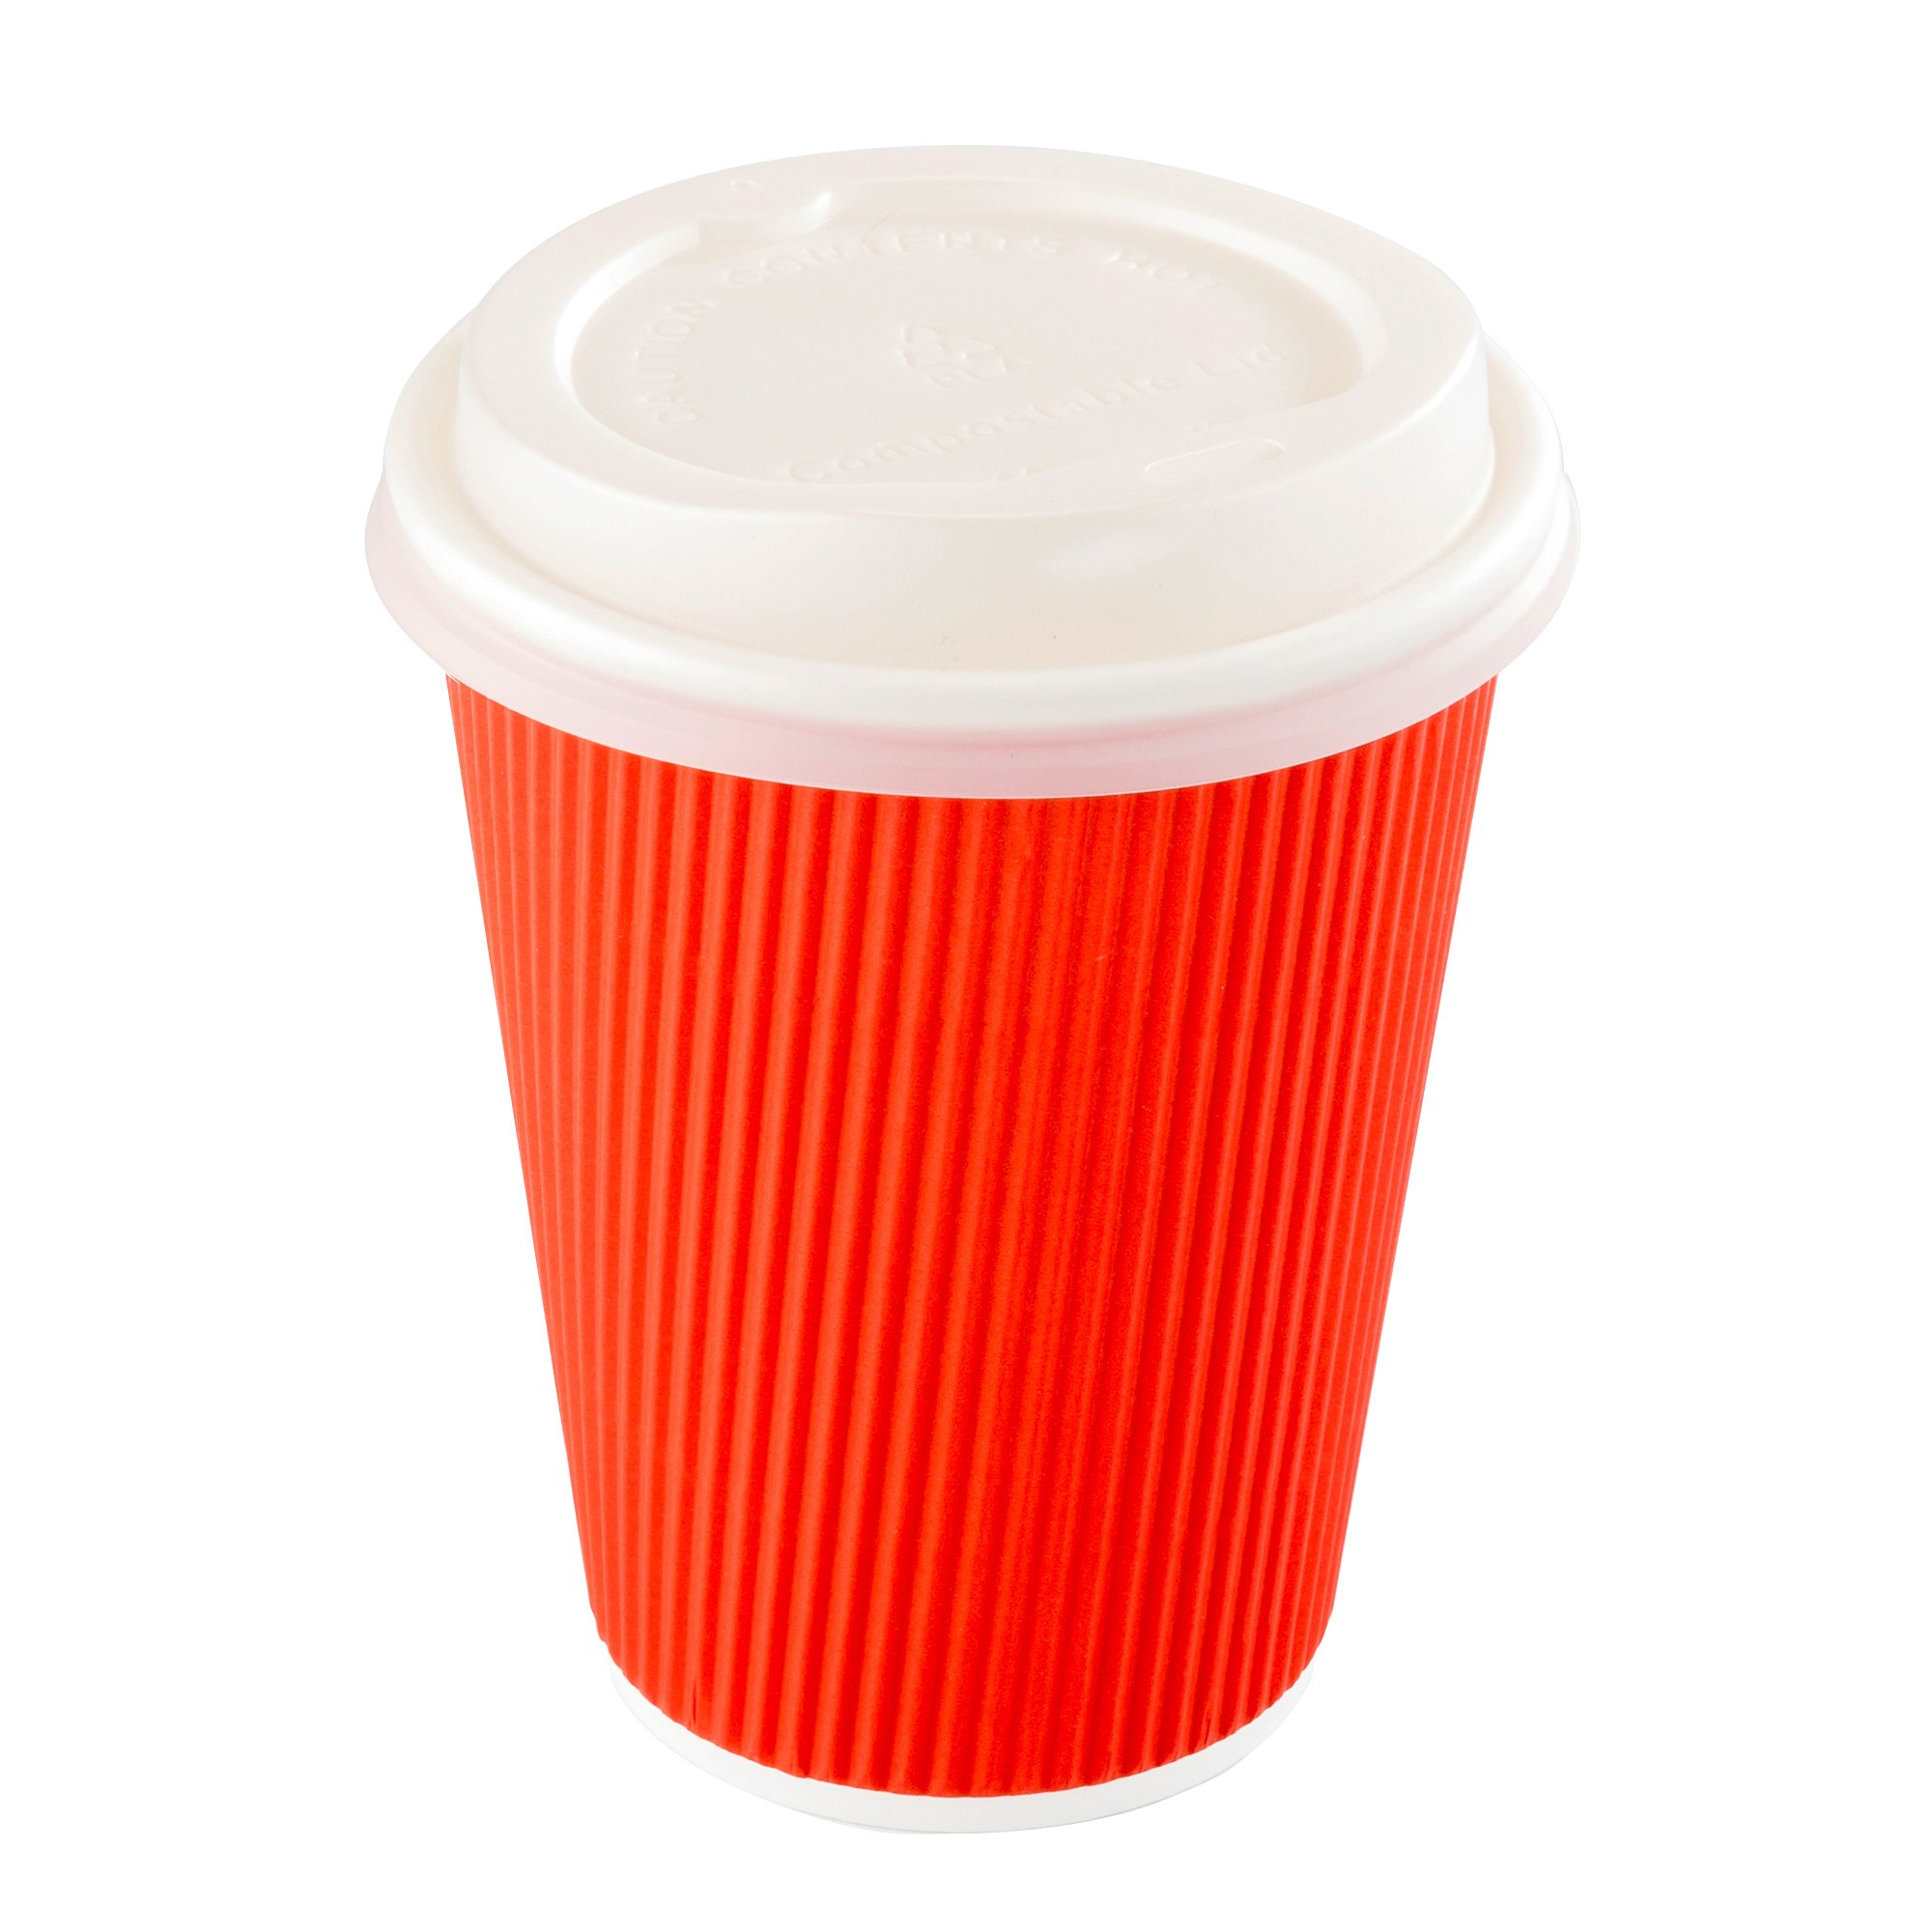 White Coffee Cup Lids, PLA Plastic Compostable Coffee Lids, Hot Beverage Cups - Fits 8, 12 & 16 oz Cups - 500ct Box - Restaurantware